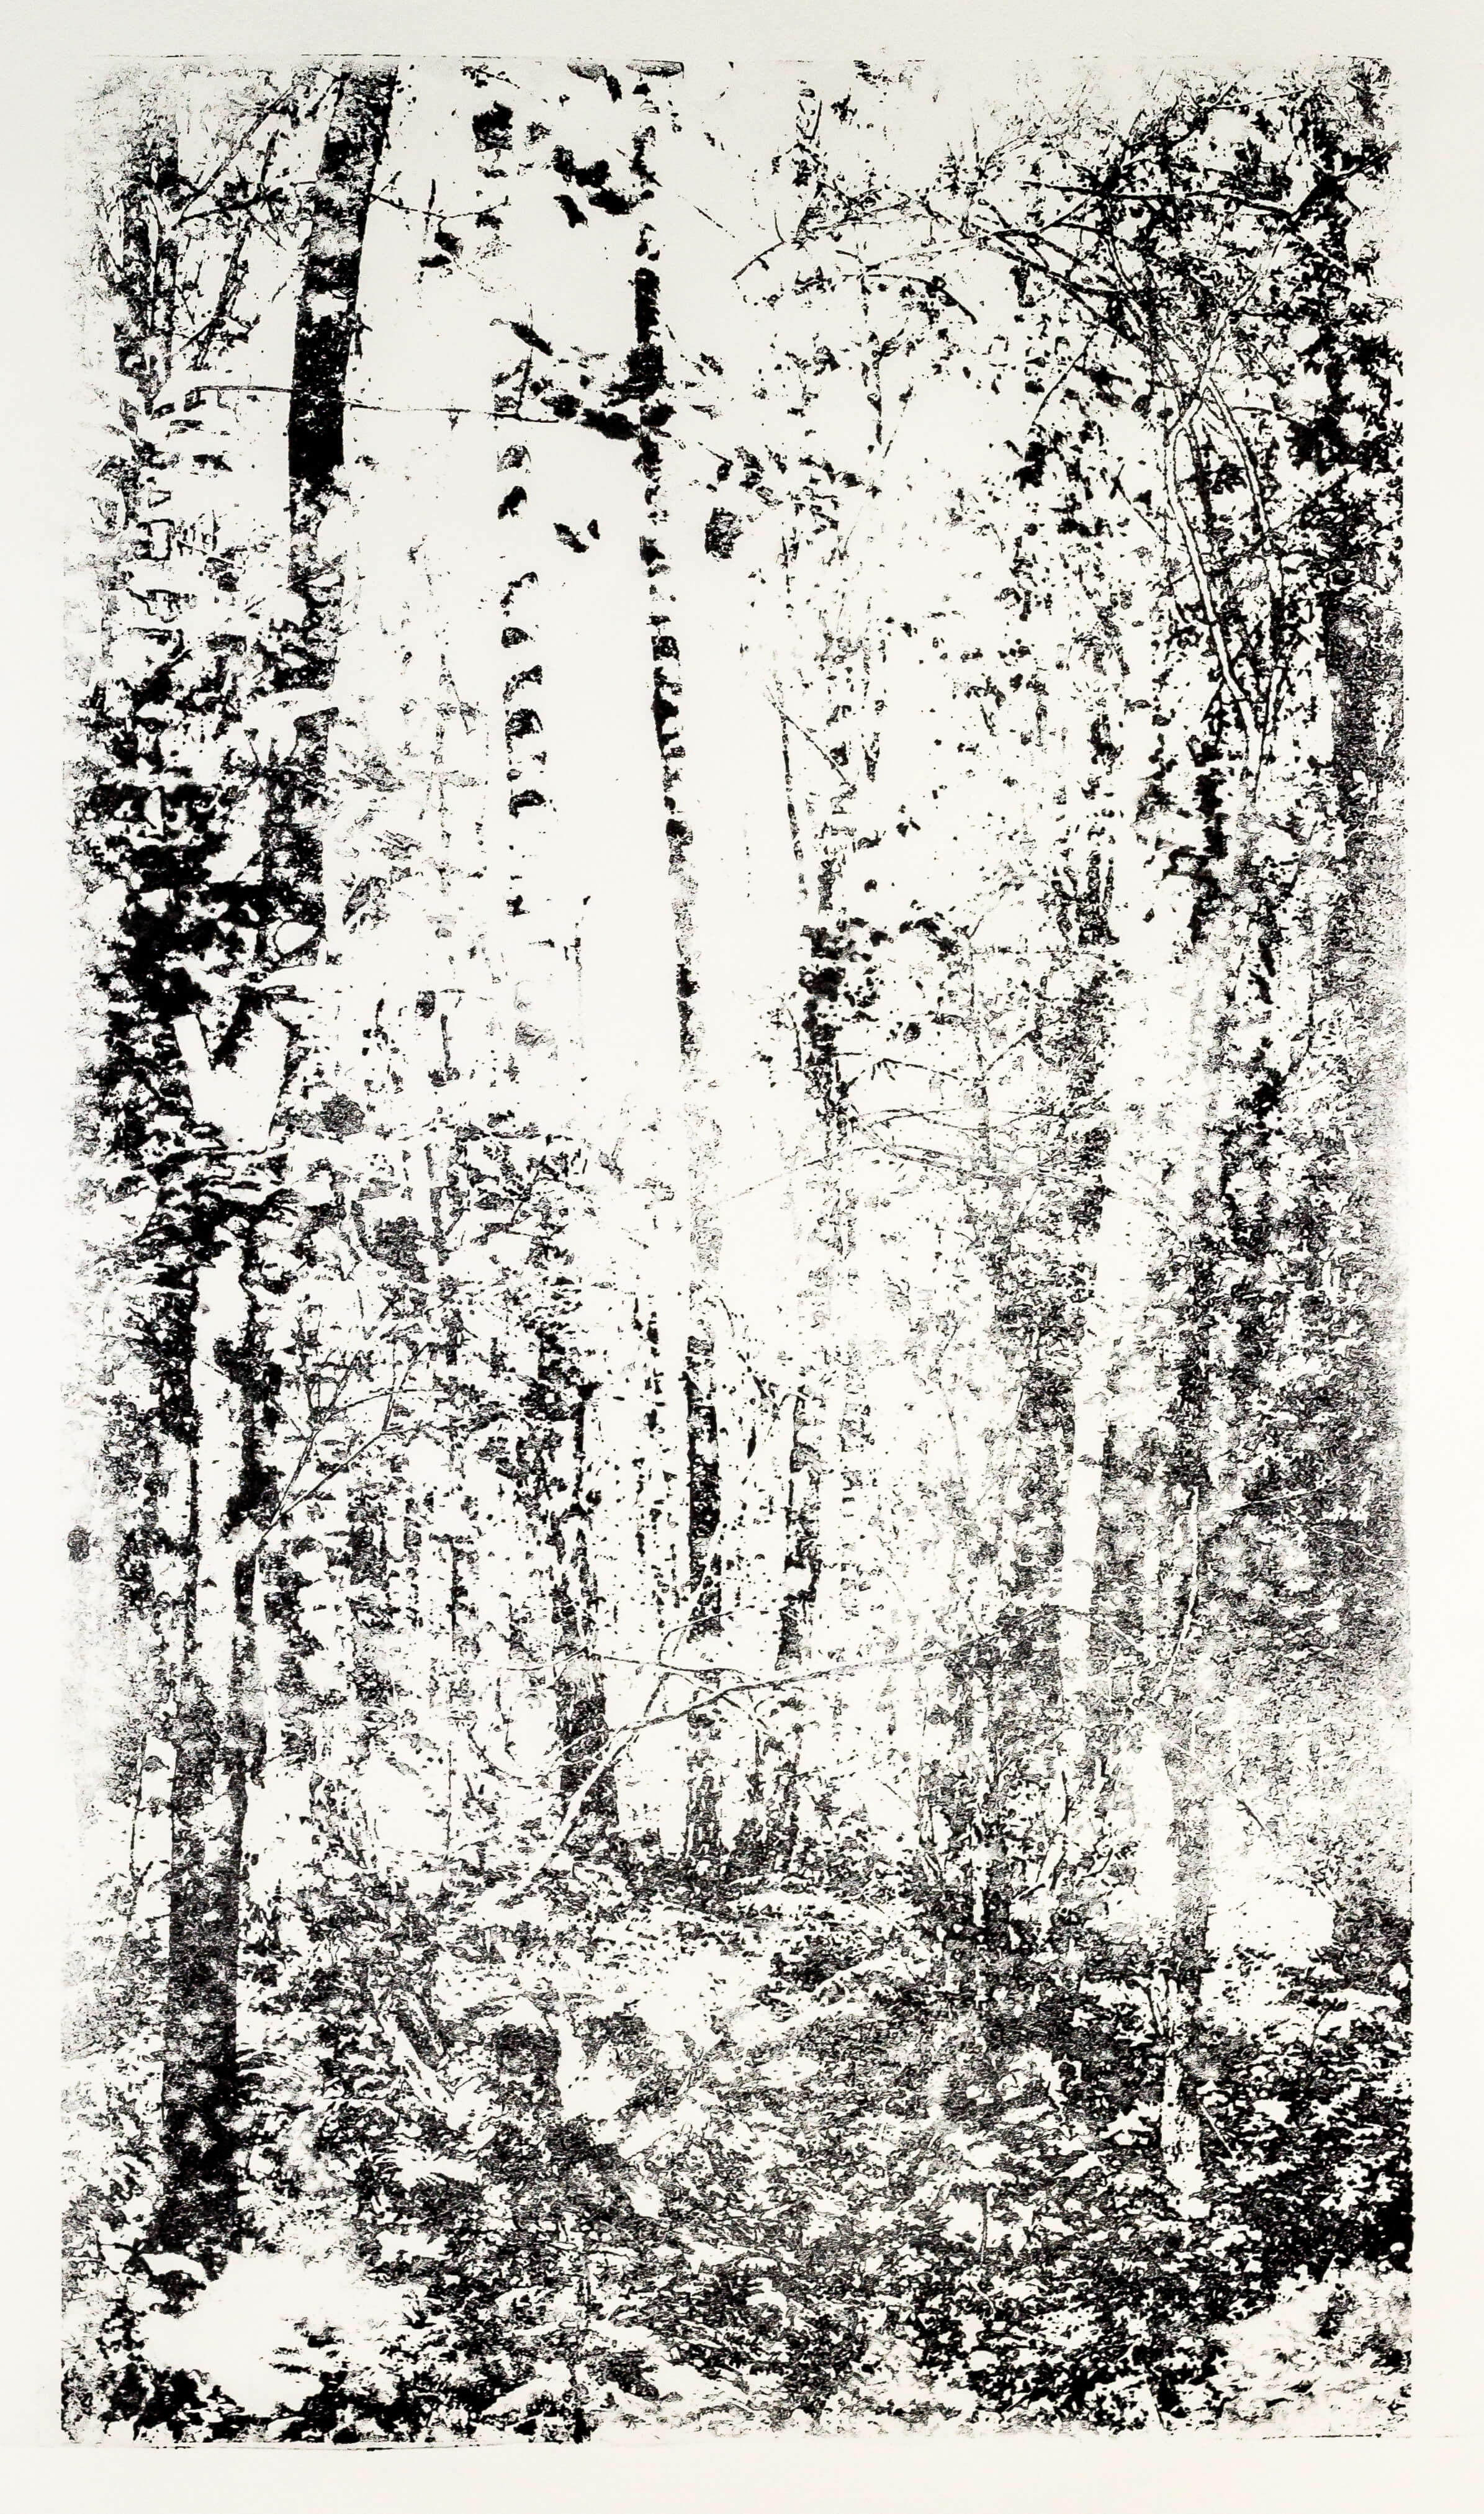 Katharina Albers, Wald XX-IV, 2015, Lithographie, Unikat, 60×33 cm